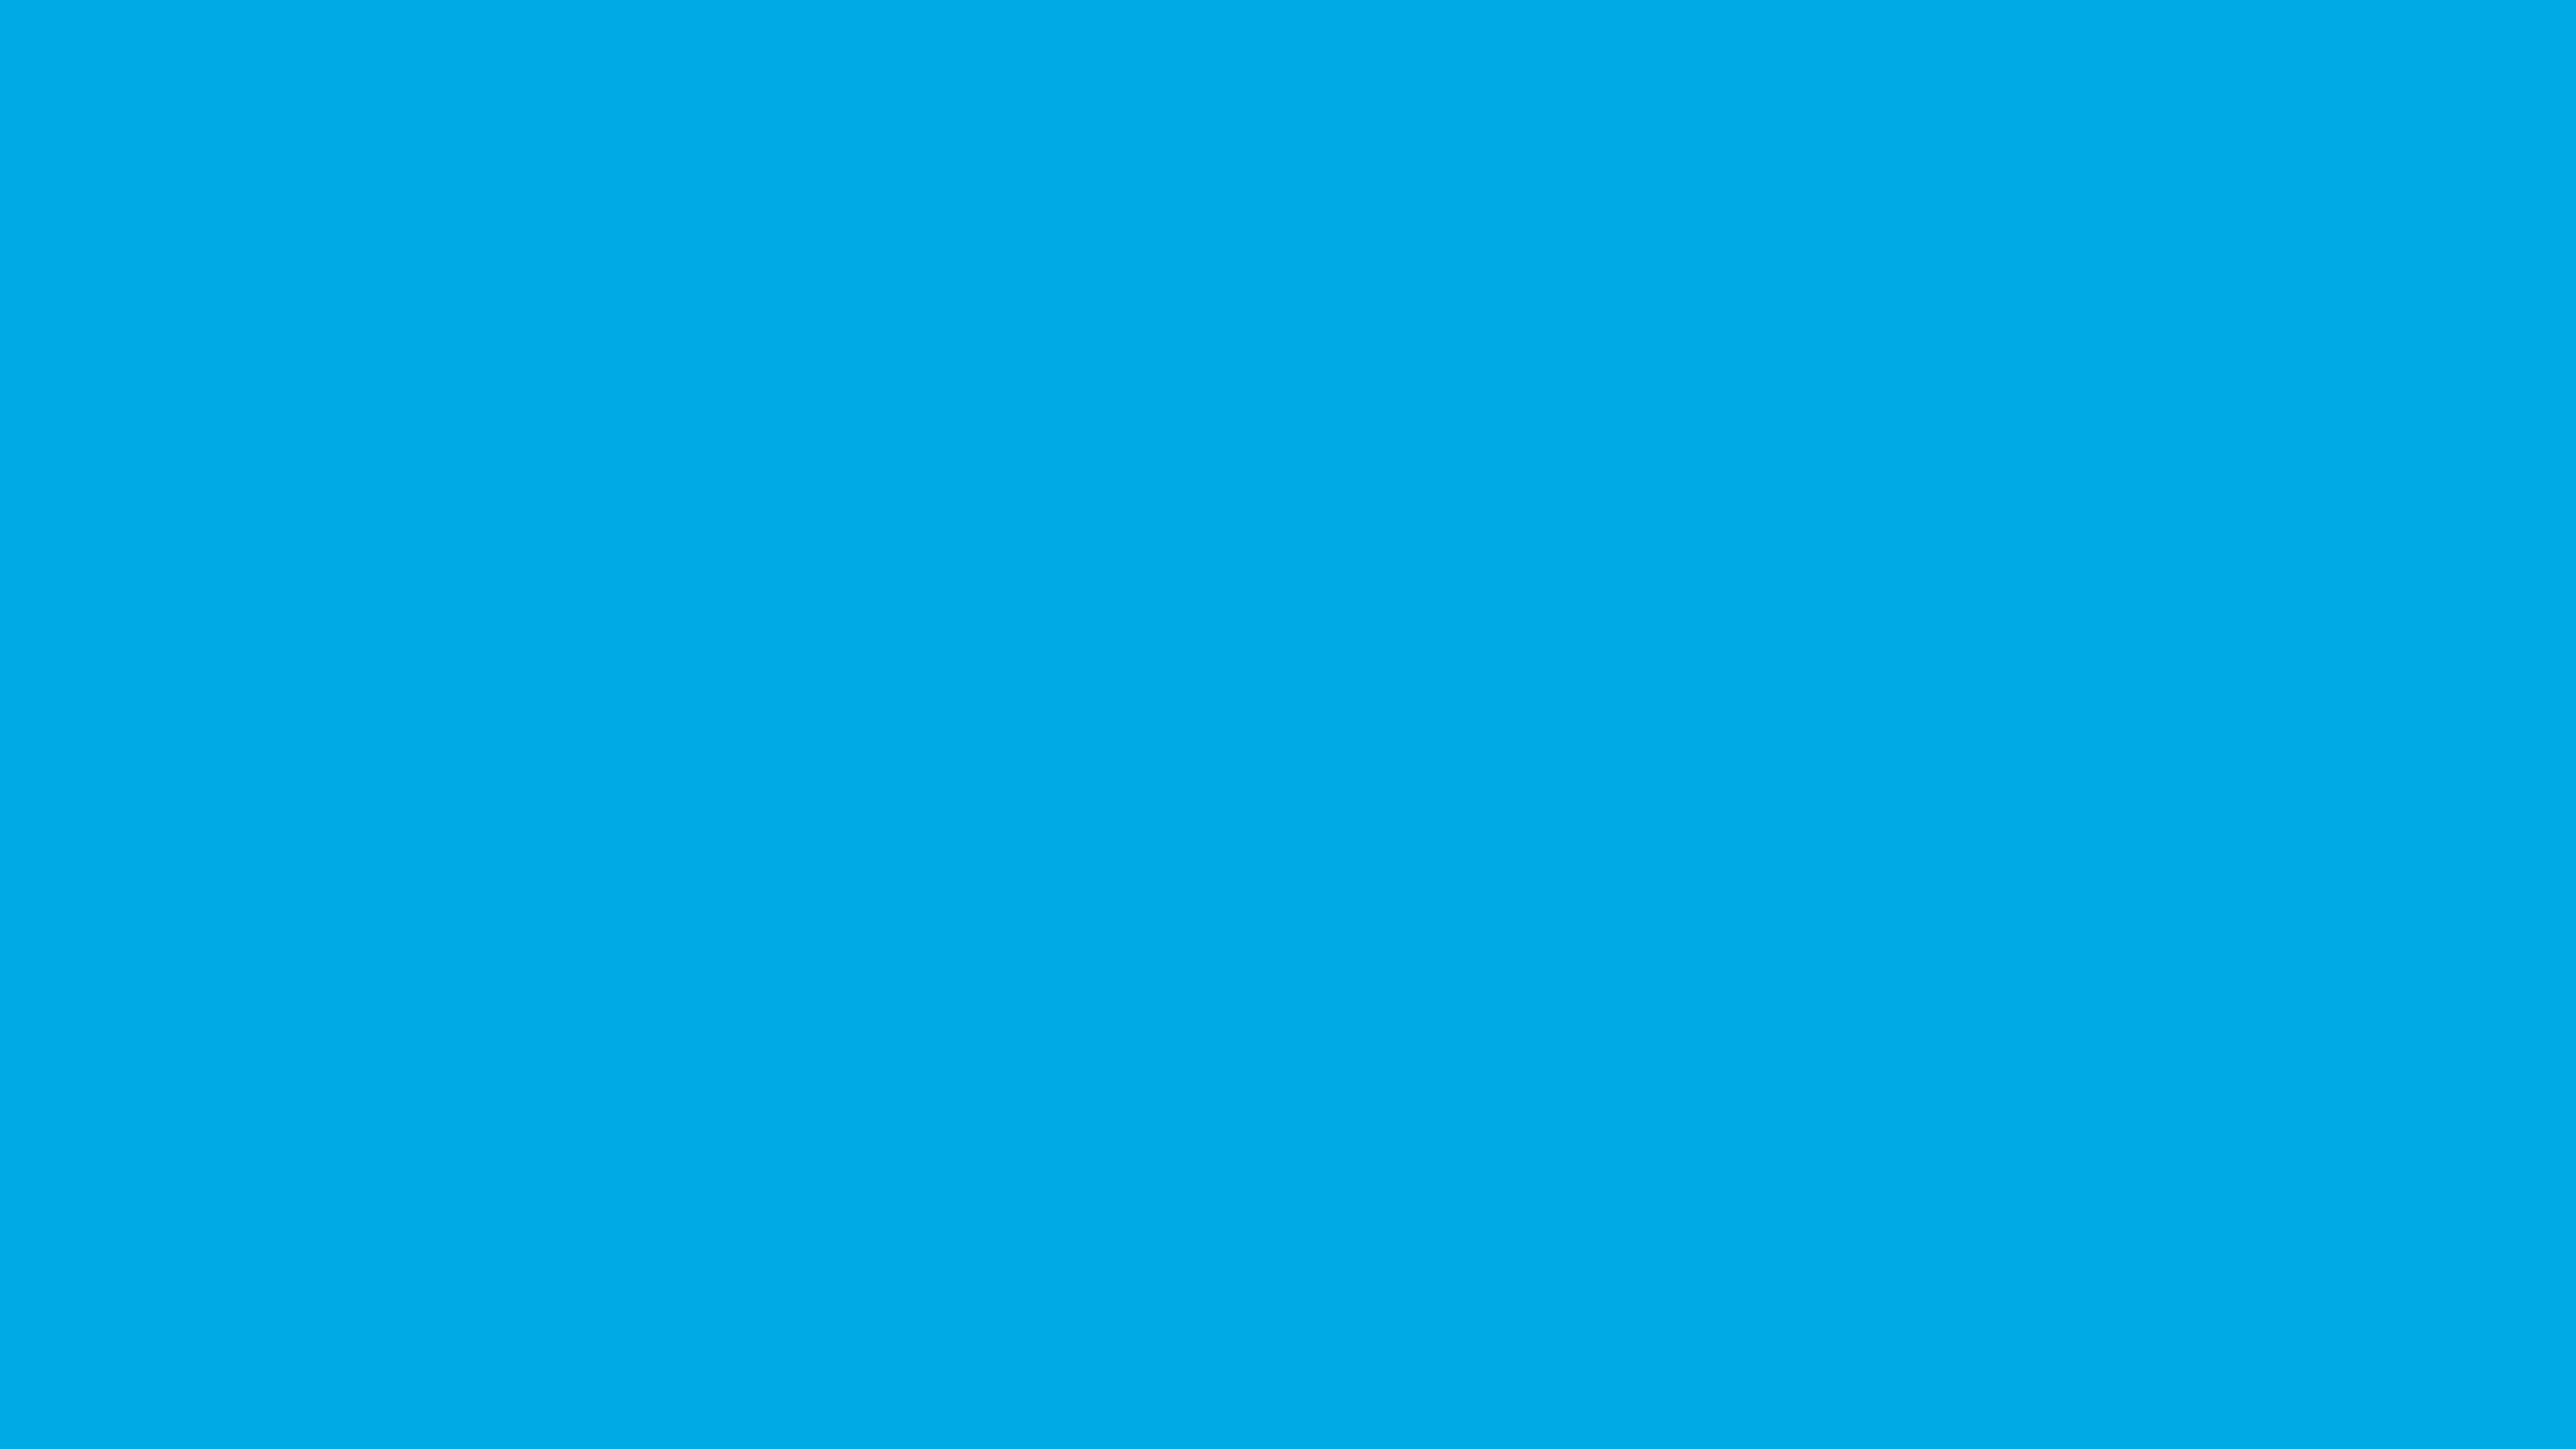 4096x2304 Spanish Sky Blue Solid Color Background